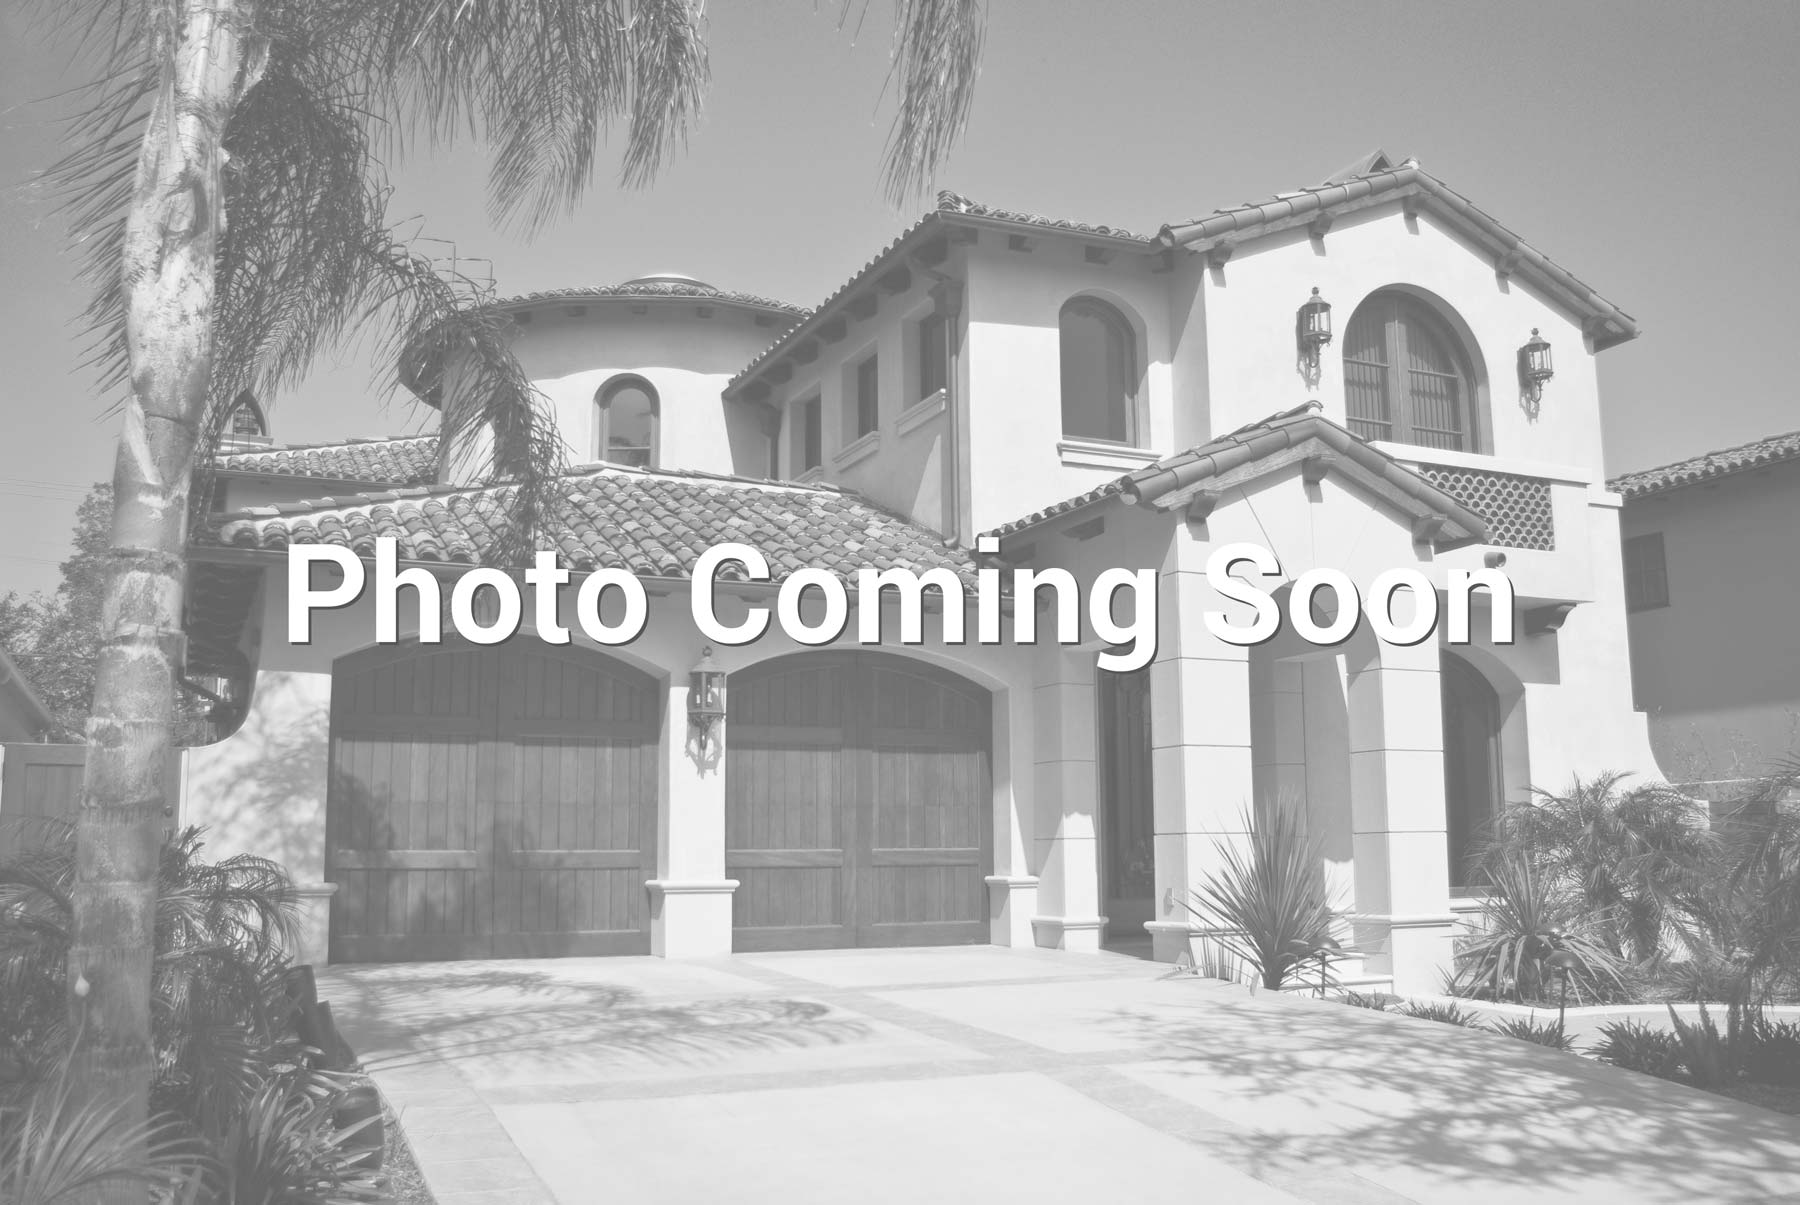 $795,000 - 4Br/2Ba - Home for Sale in Mccormick Ranch, Scottsdale